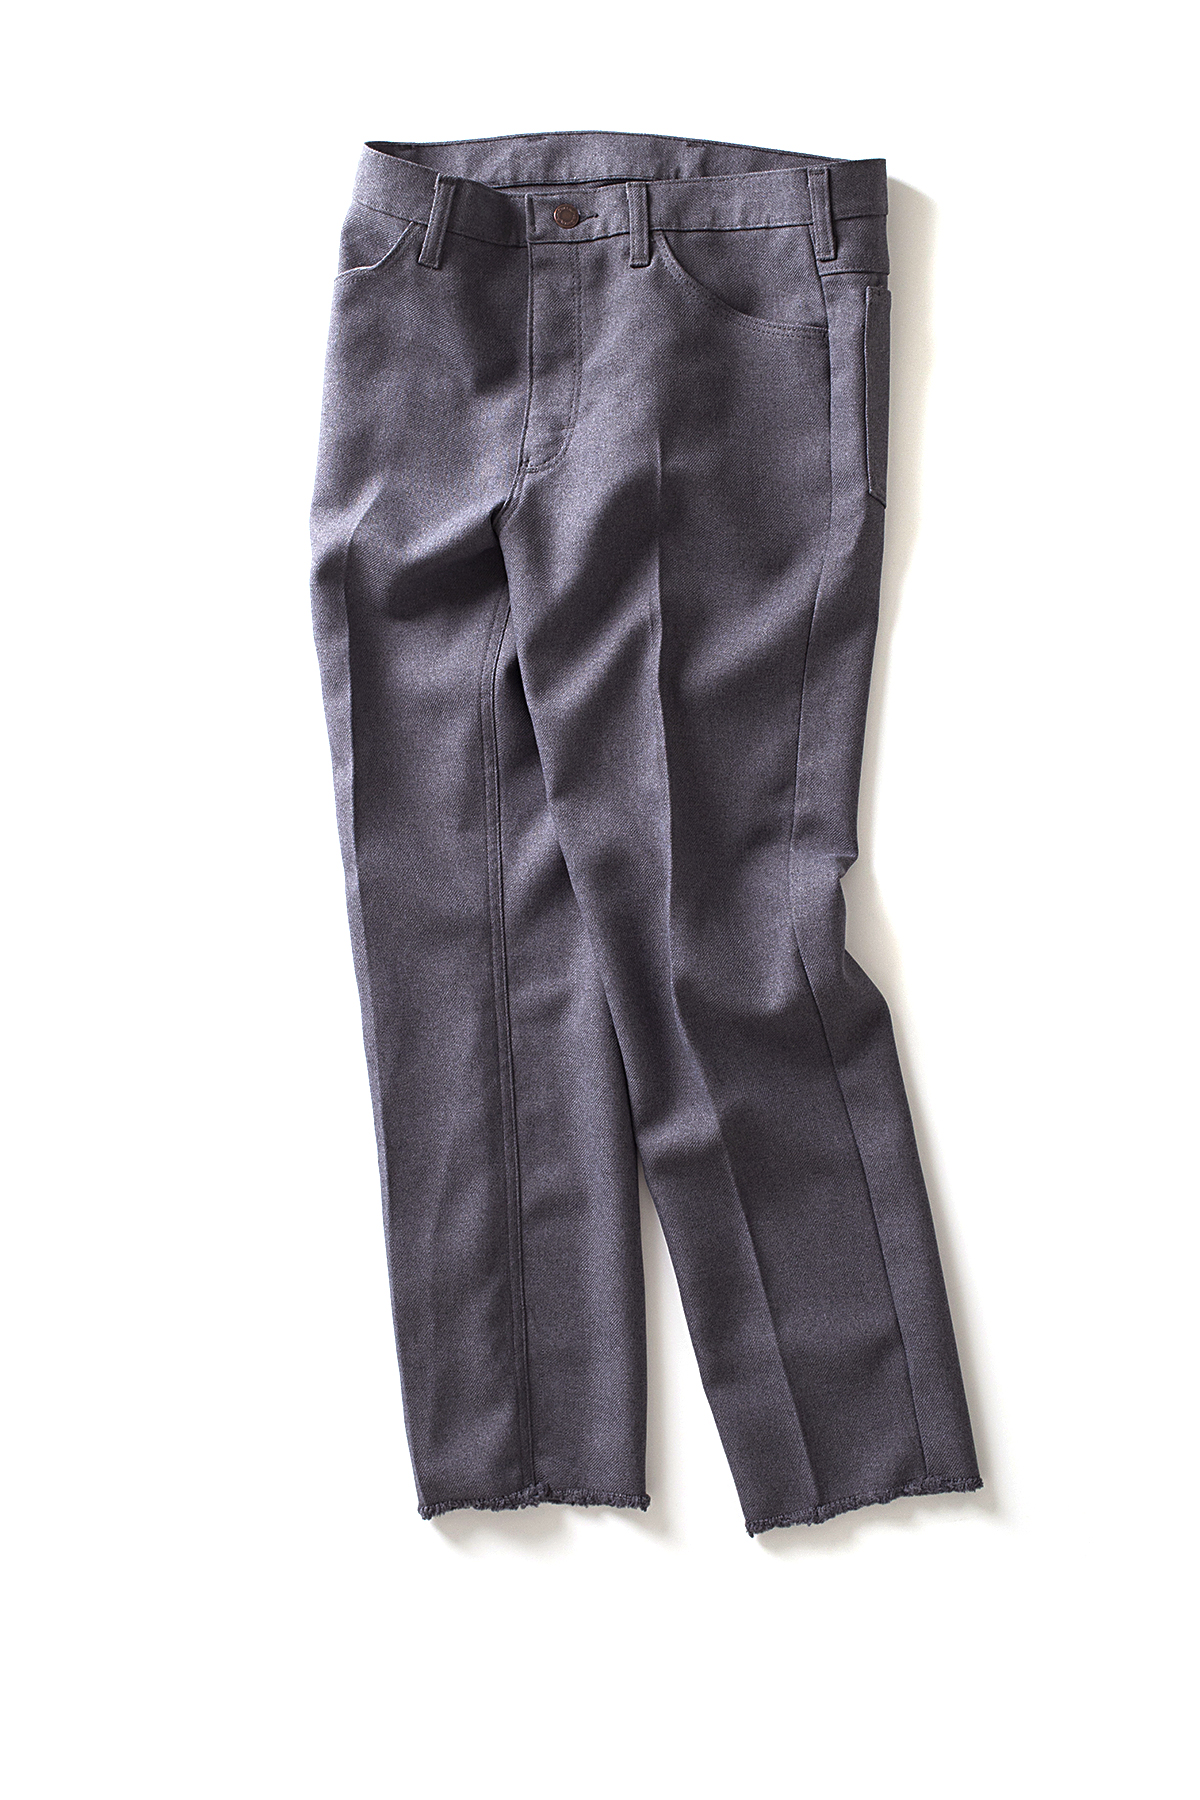 HEXICO : Ex. Wrancher Cut Off Trousers (Grey)